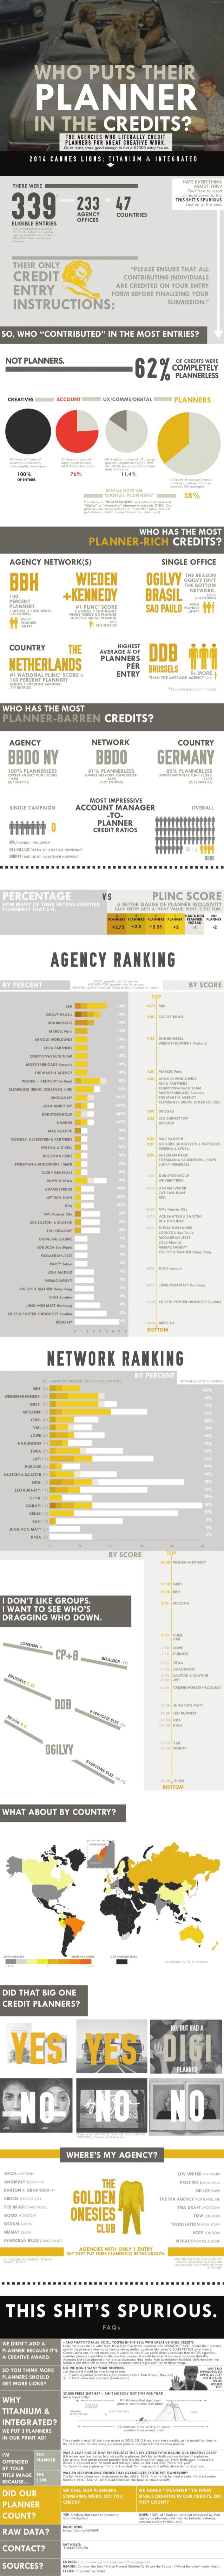 WHO PUTS THEIR PLANNER IN THE CREDITS? [INFOGRAPHIC] by becca taylor via slideshare